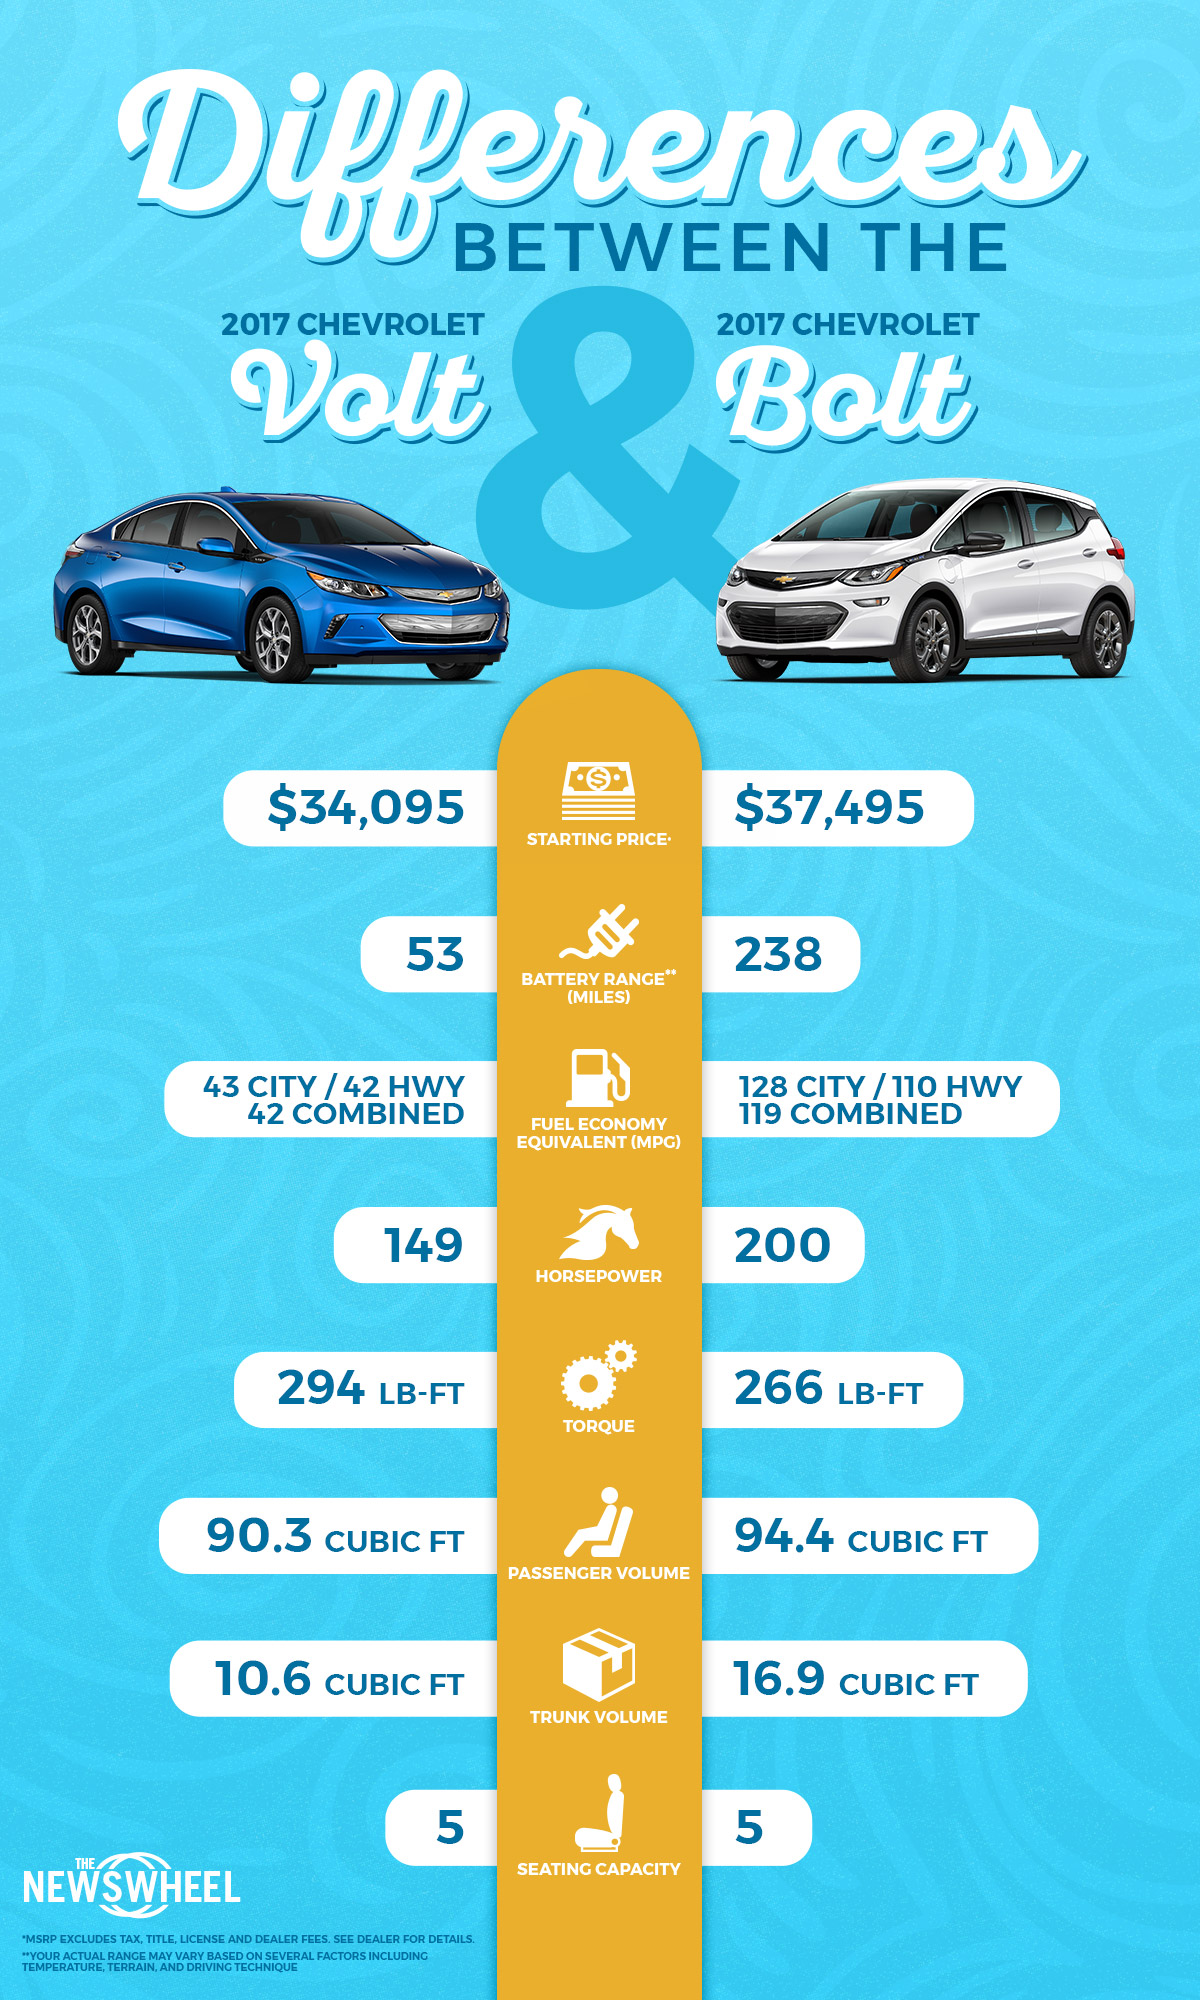 Infographic: Differences Between the 2017 Chevrolet Volt and